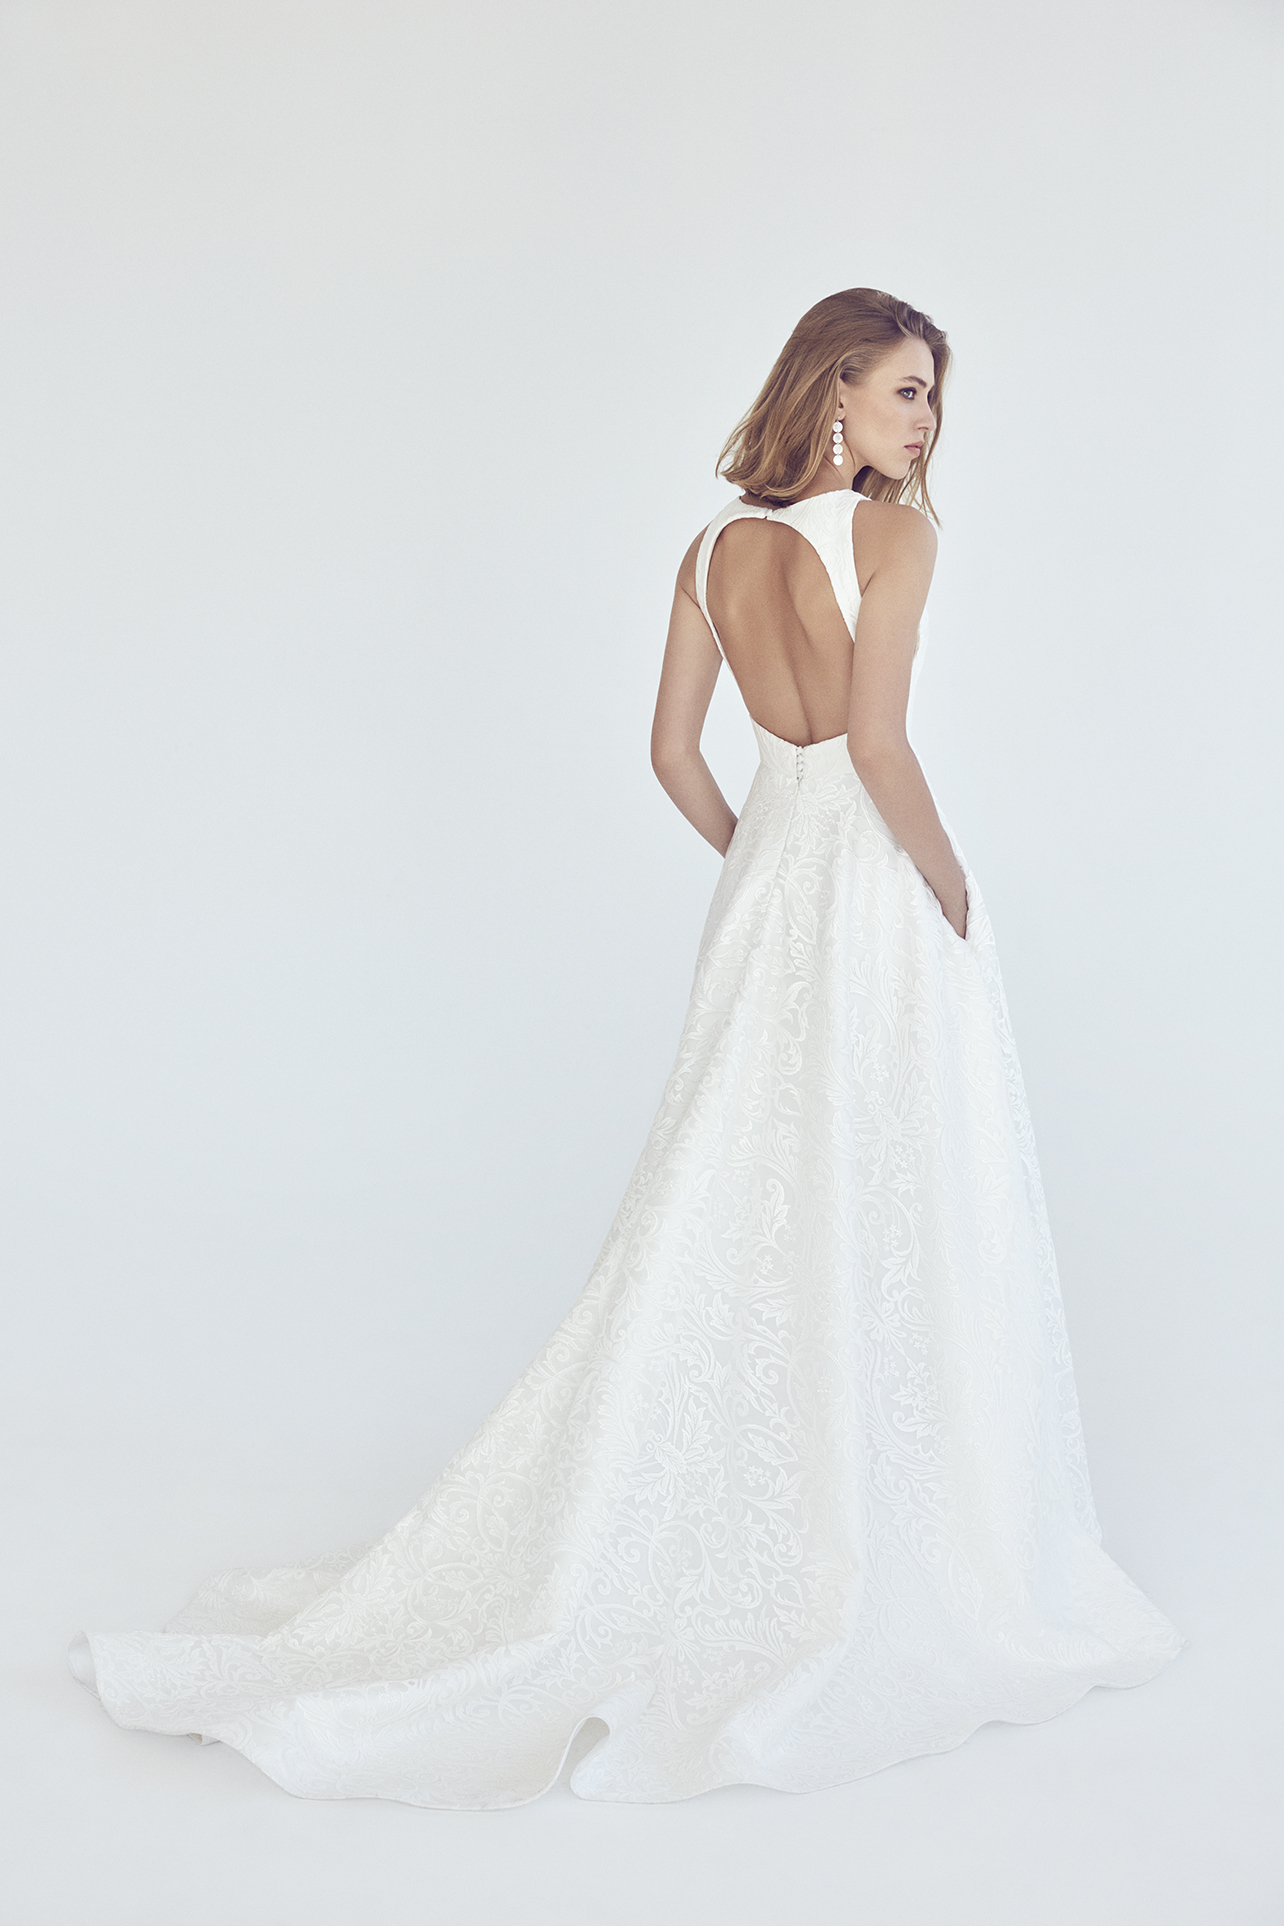 Neptune Gown by Suzanne Harward   LOVE FIND CO.